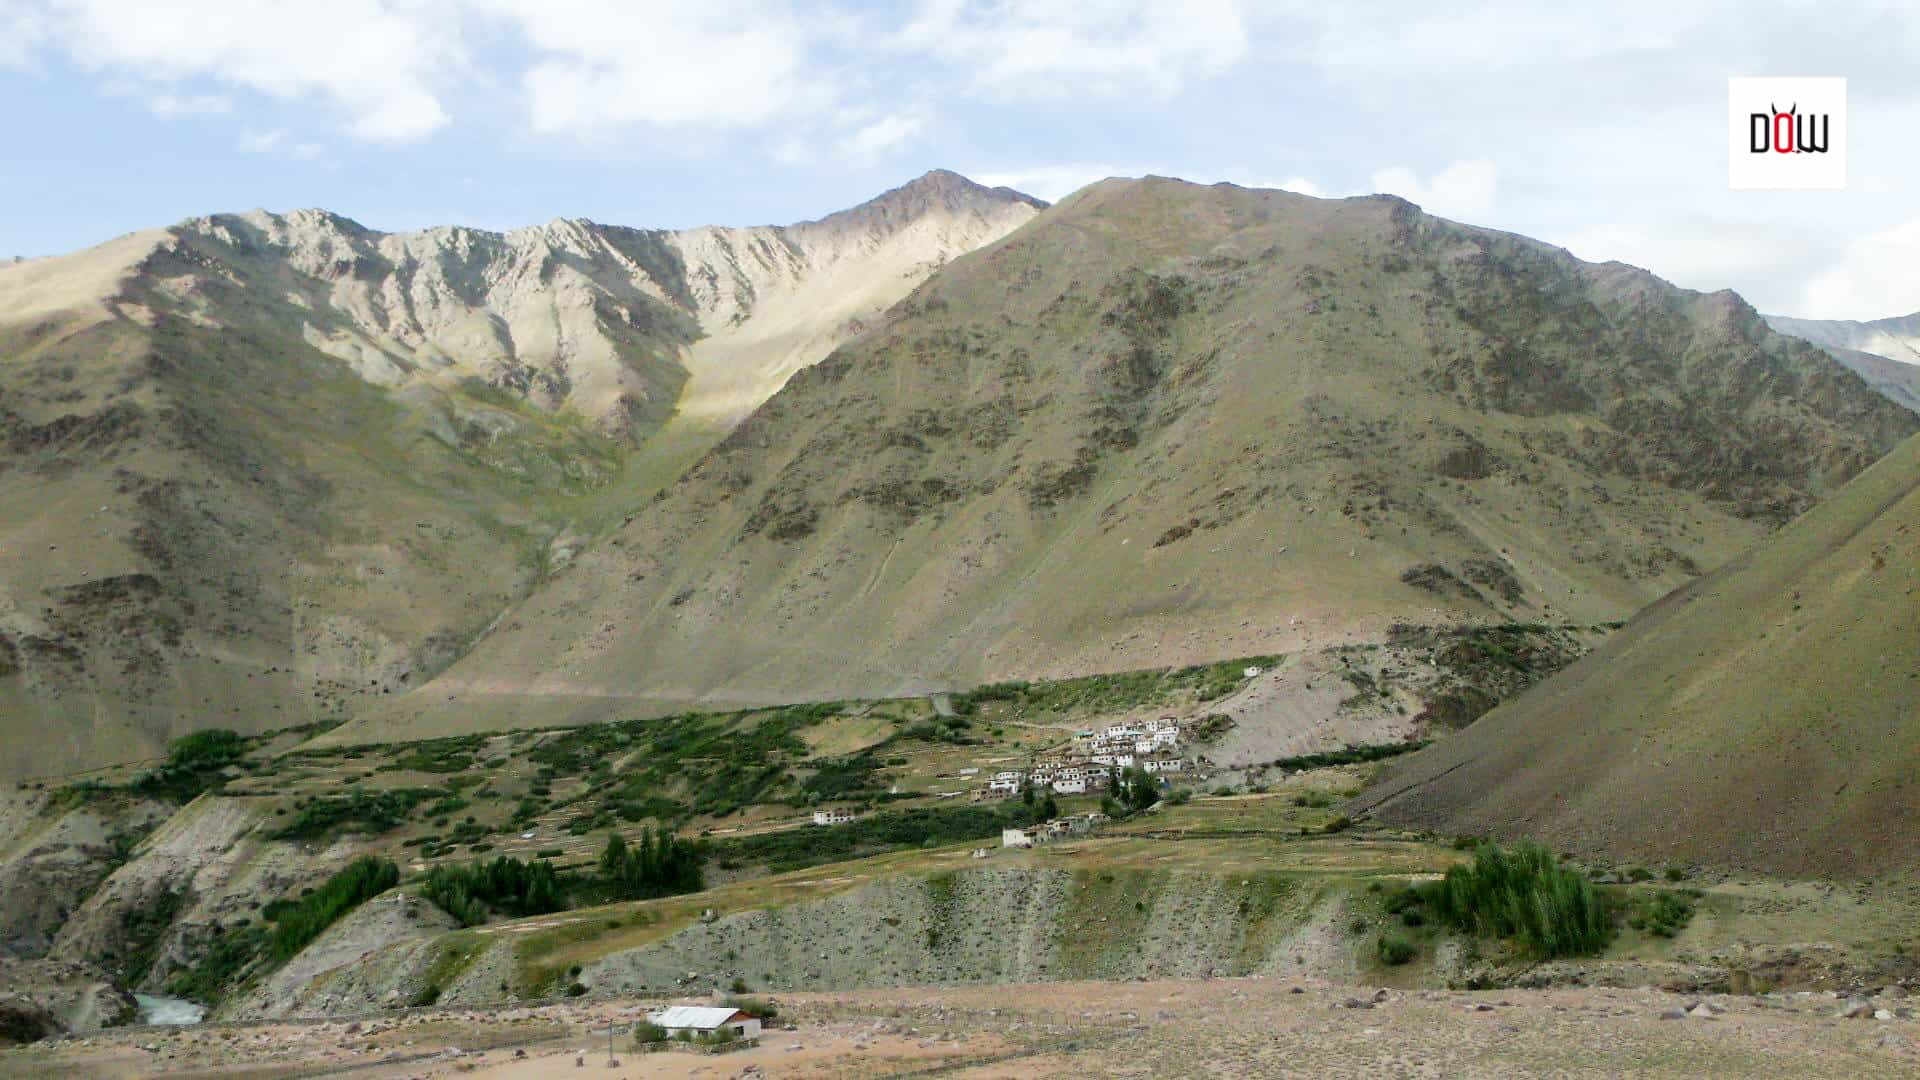 Another view of the village from the other side